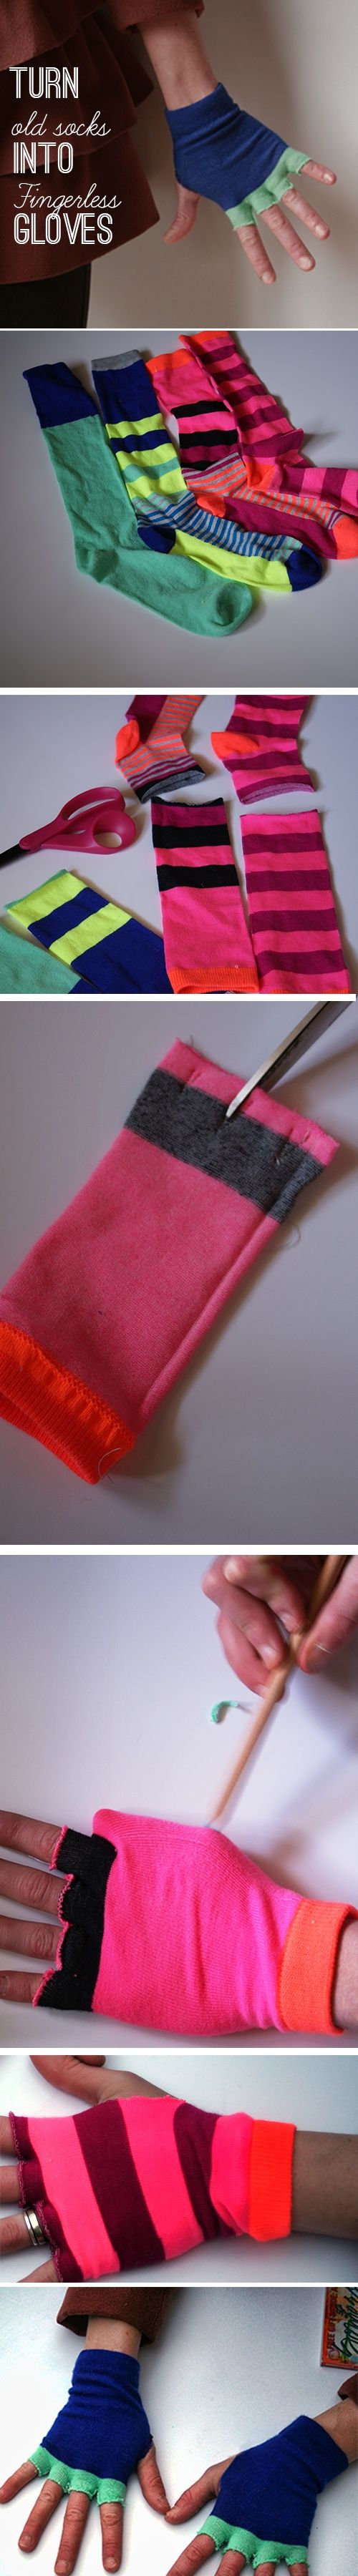 Old Socks to Fingerless Gloves for Pokemon Costume.